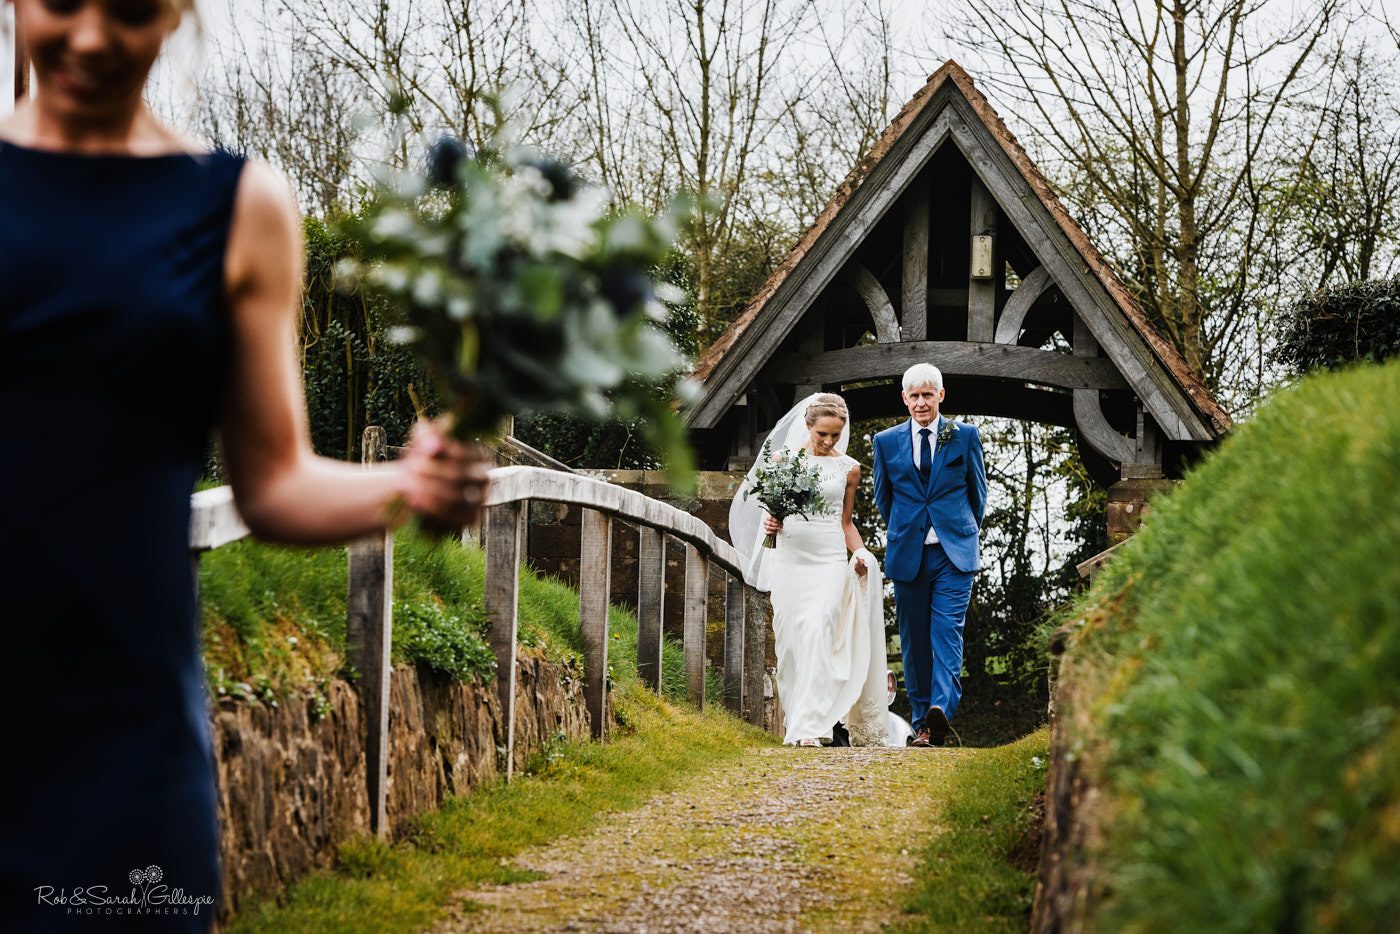 Bride and father walk St Kenelm's church in Worcestershire for wedding